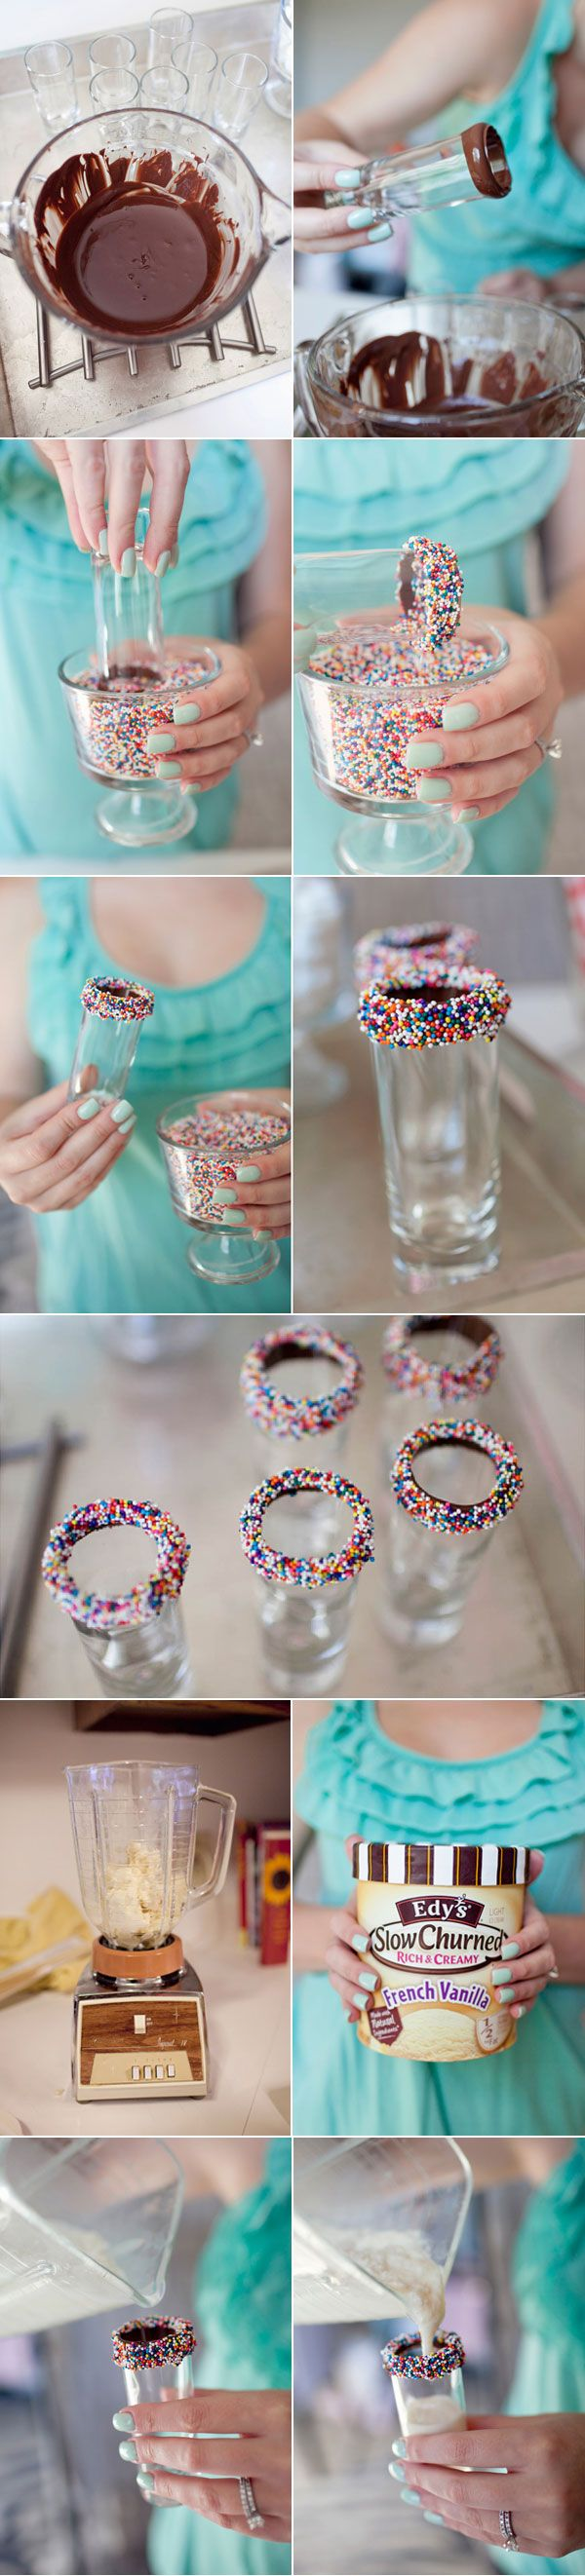 Cool. Milkshakes with fudge/sprinkled rim#Repin By:Pinterest++ for iPad#